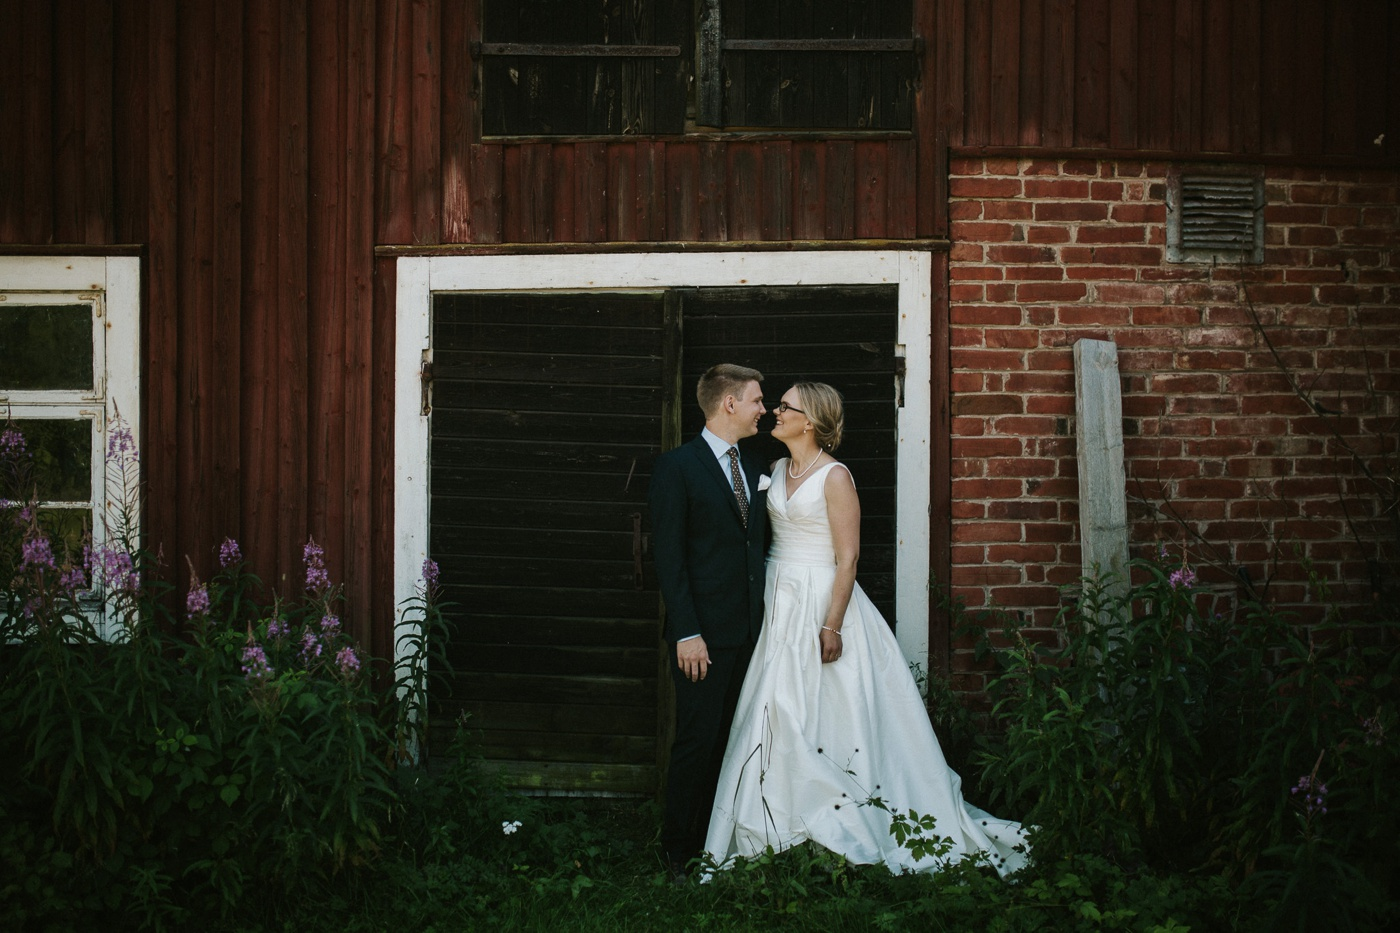 ceciliajoakim_sweden-countryside-summer-wedding_melbourne-fun-quirky-wedding-photography_52